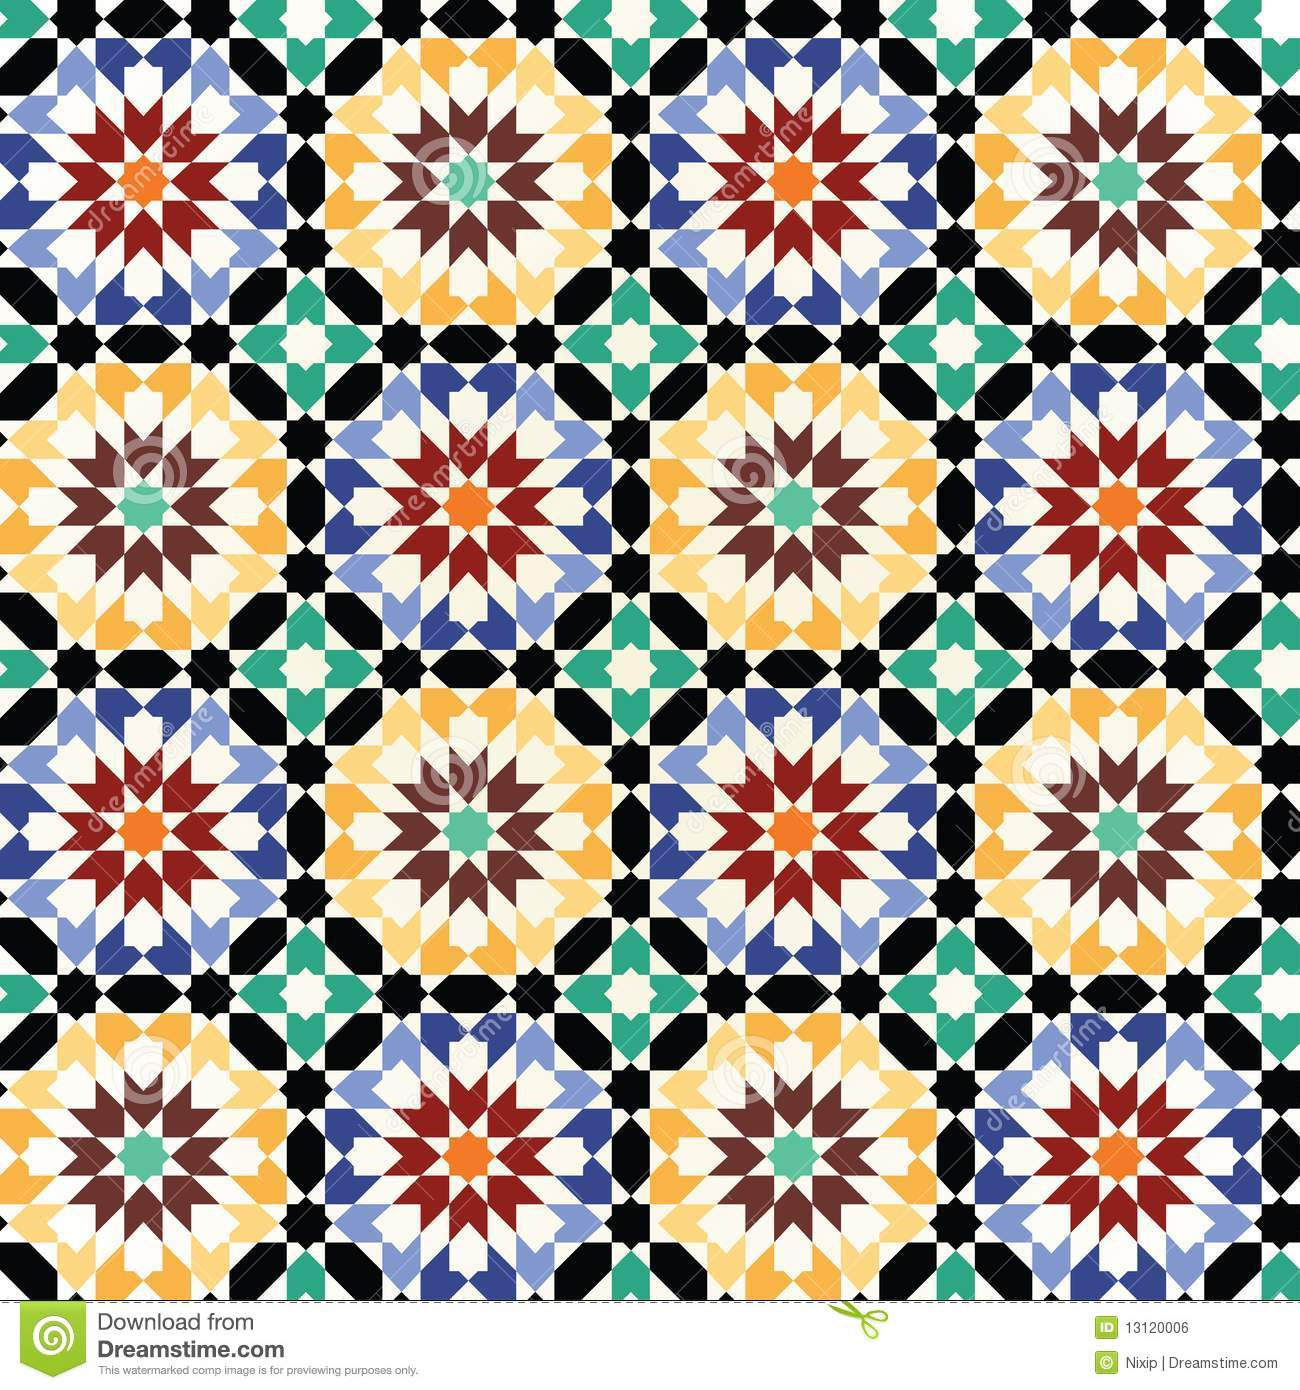 Seamless Mosaic Tile Pattern Vector Stock Vector - Illustration of